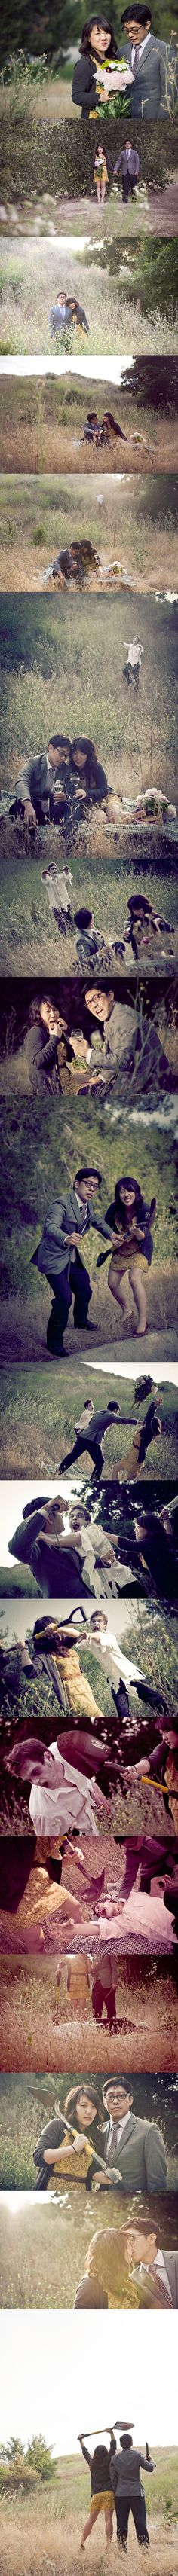 Hilarious wedding photos! :D